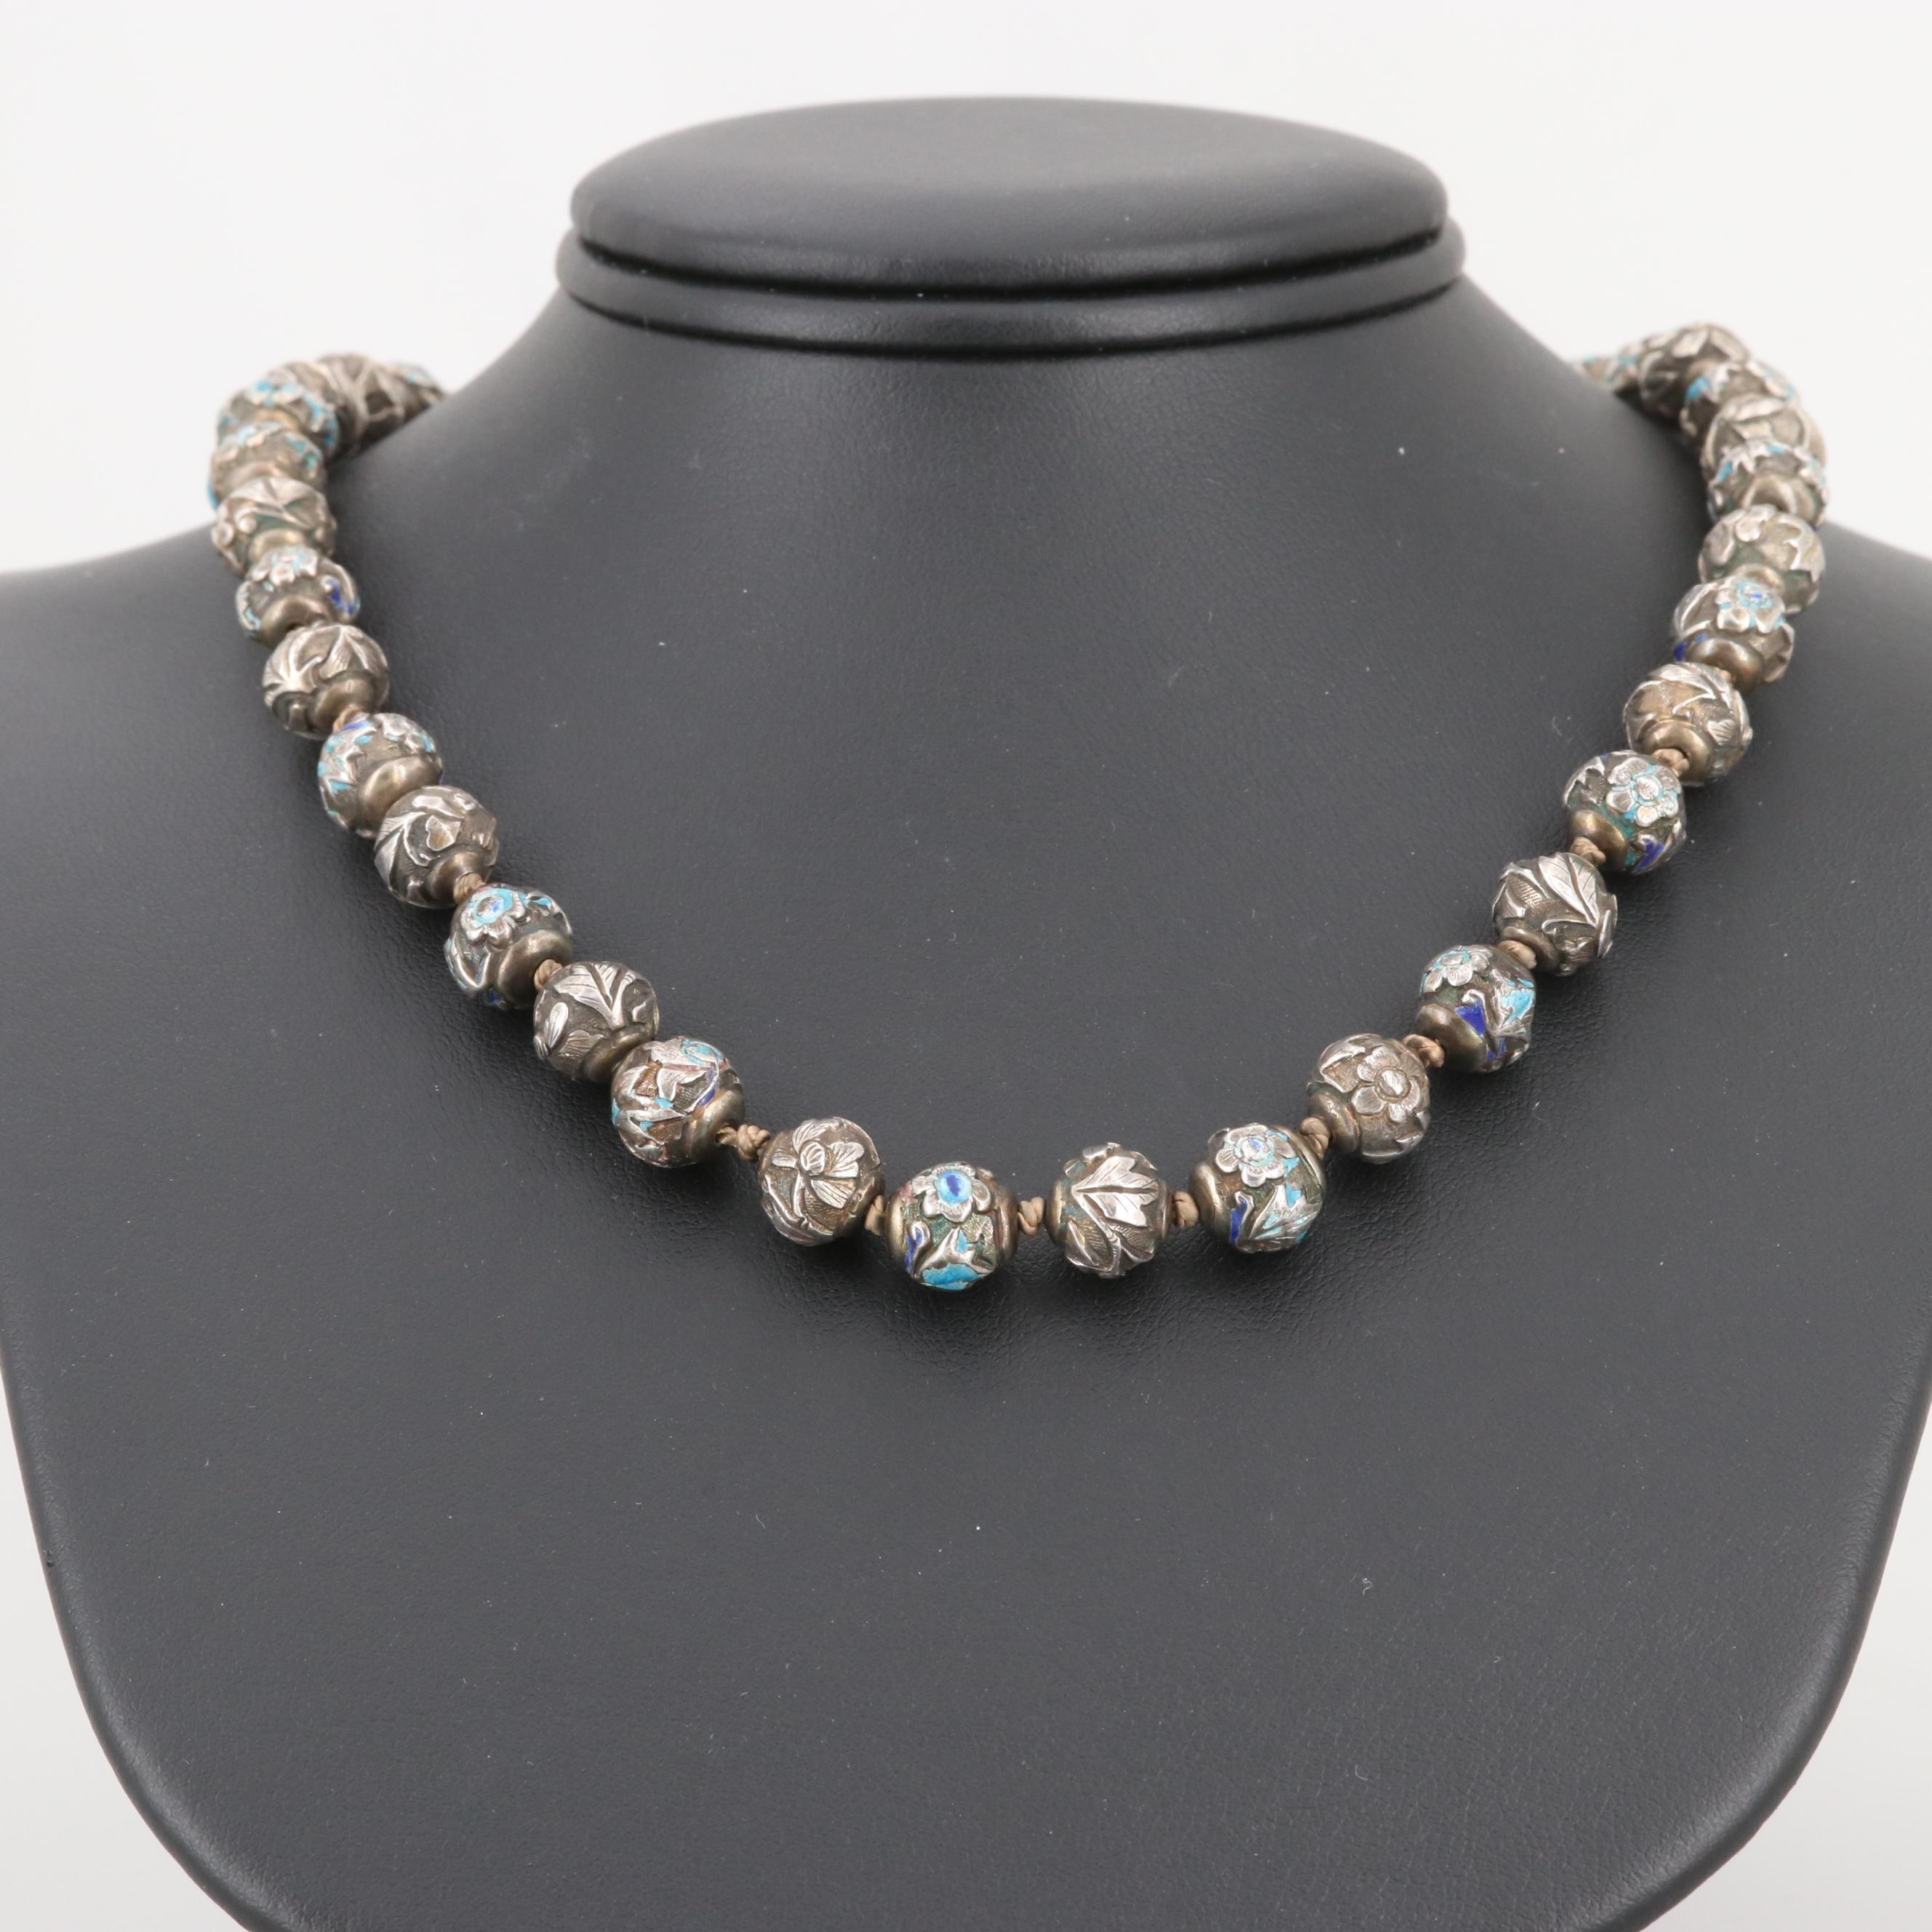 Vintage Chinese 800 Silver Beaded Necklace with Enamel Accents